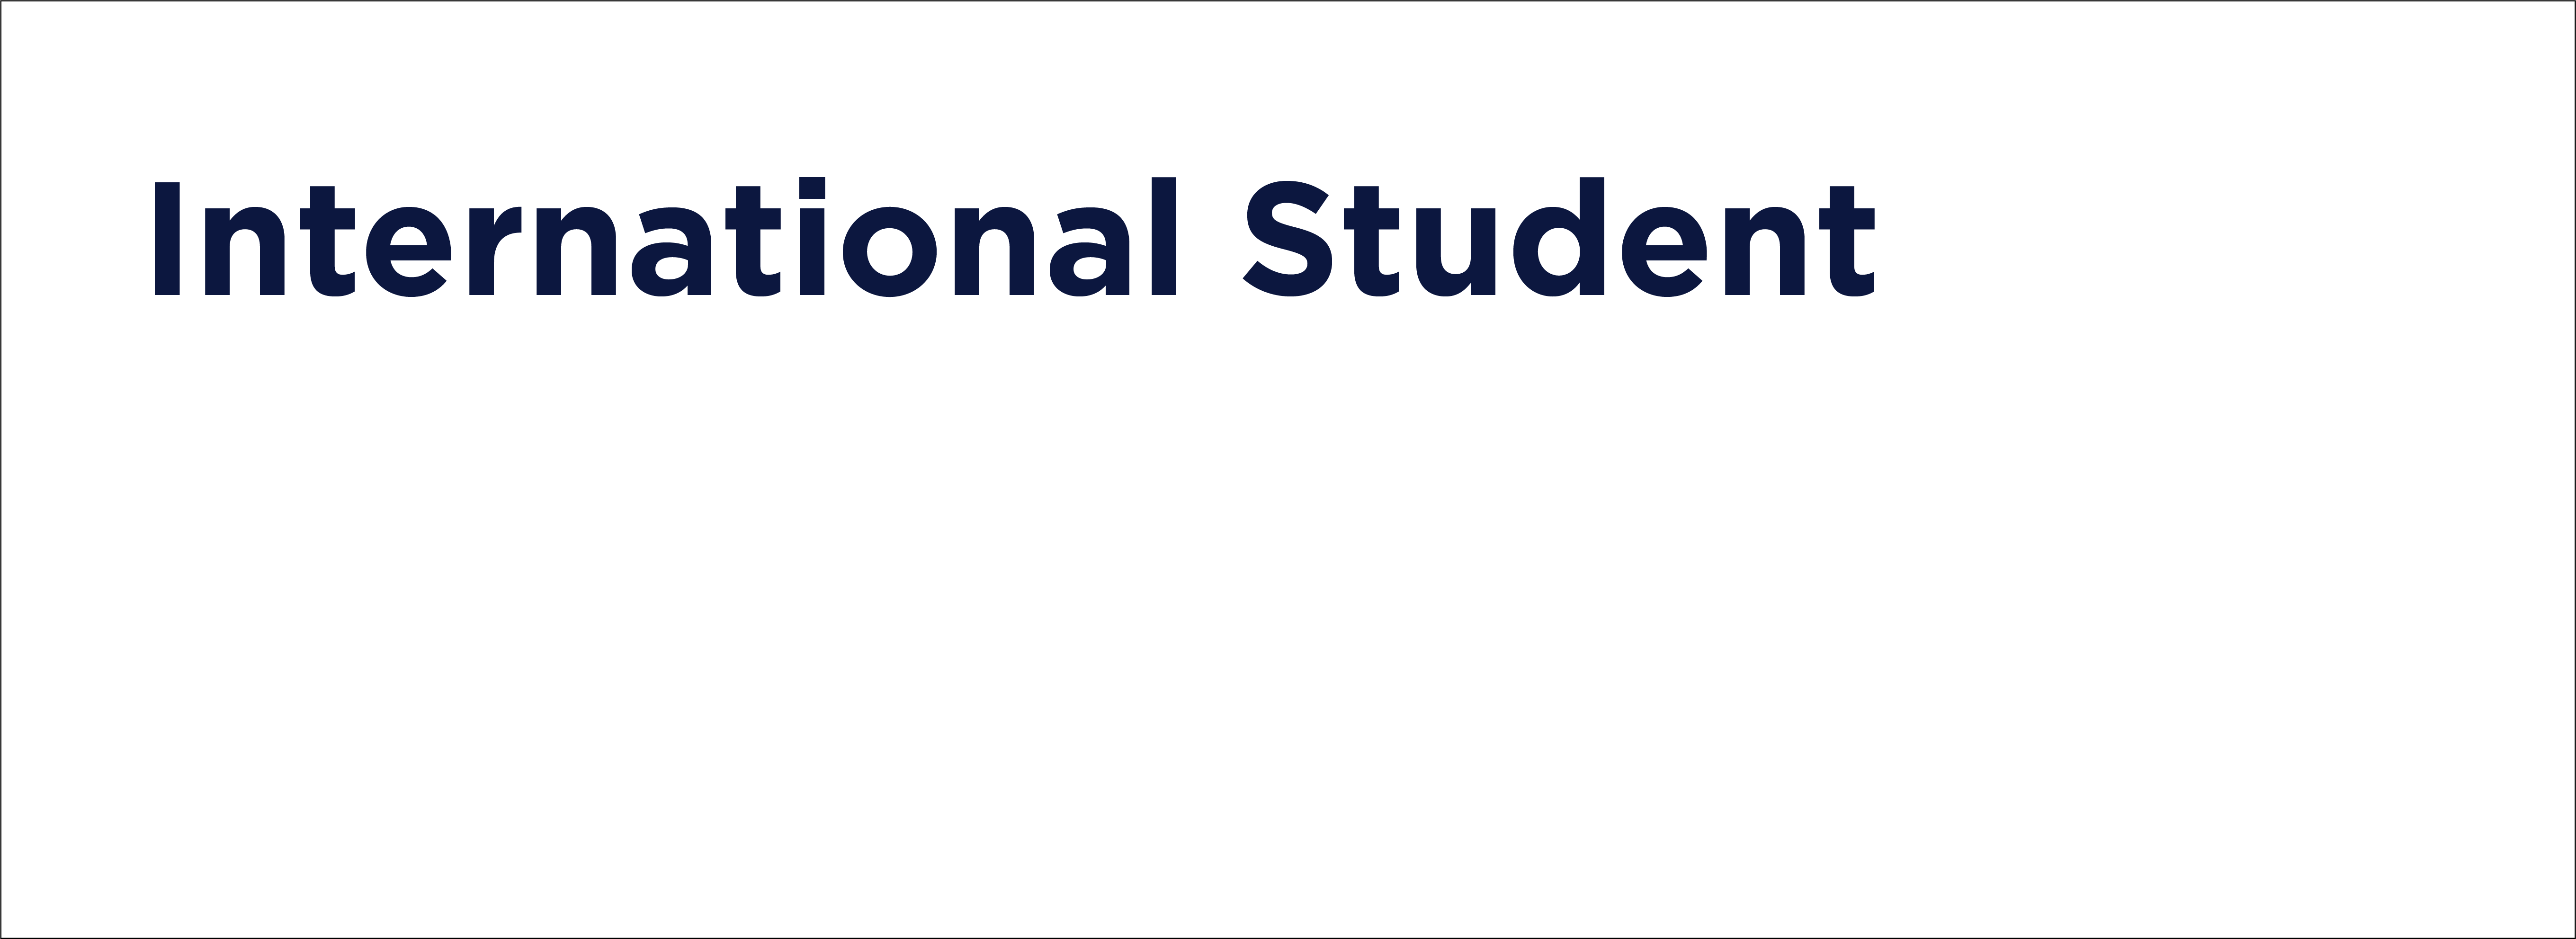 international student image